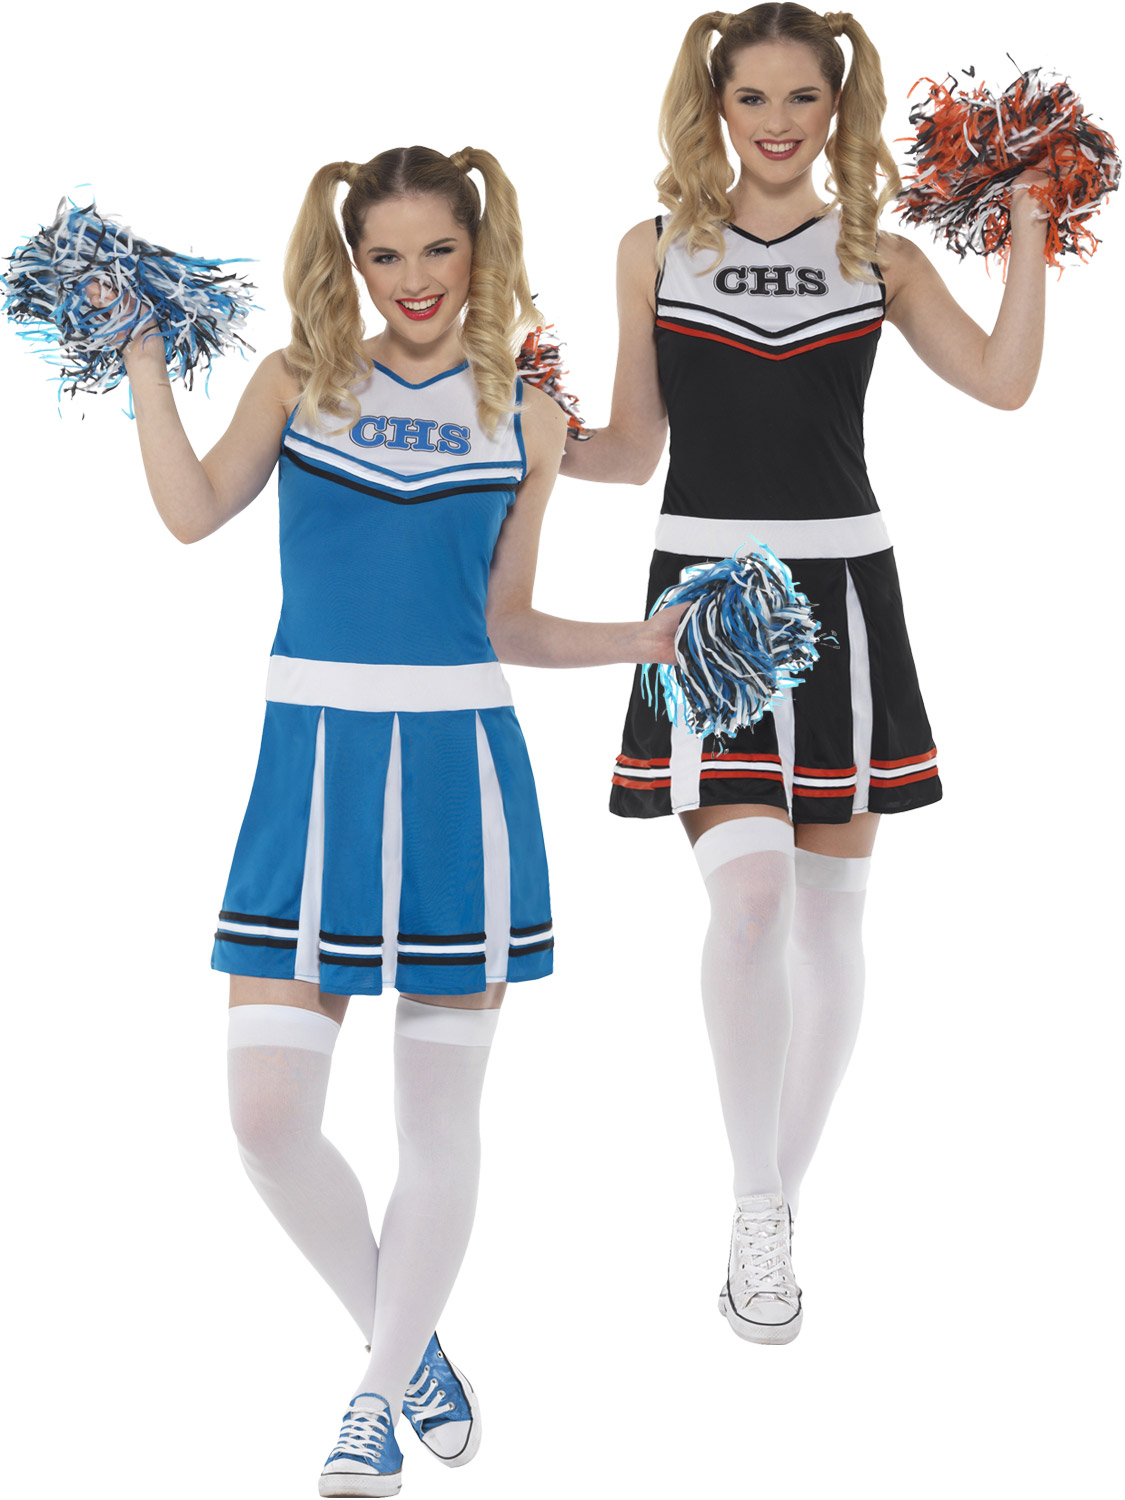 Ladies cheerleader costume adults school fancy dress womens sexy transform yourself into a cheerleader with this ladies costume its perfect if you are dressing up for a school themed fancy dress party solutioingenieria Images